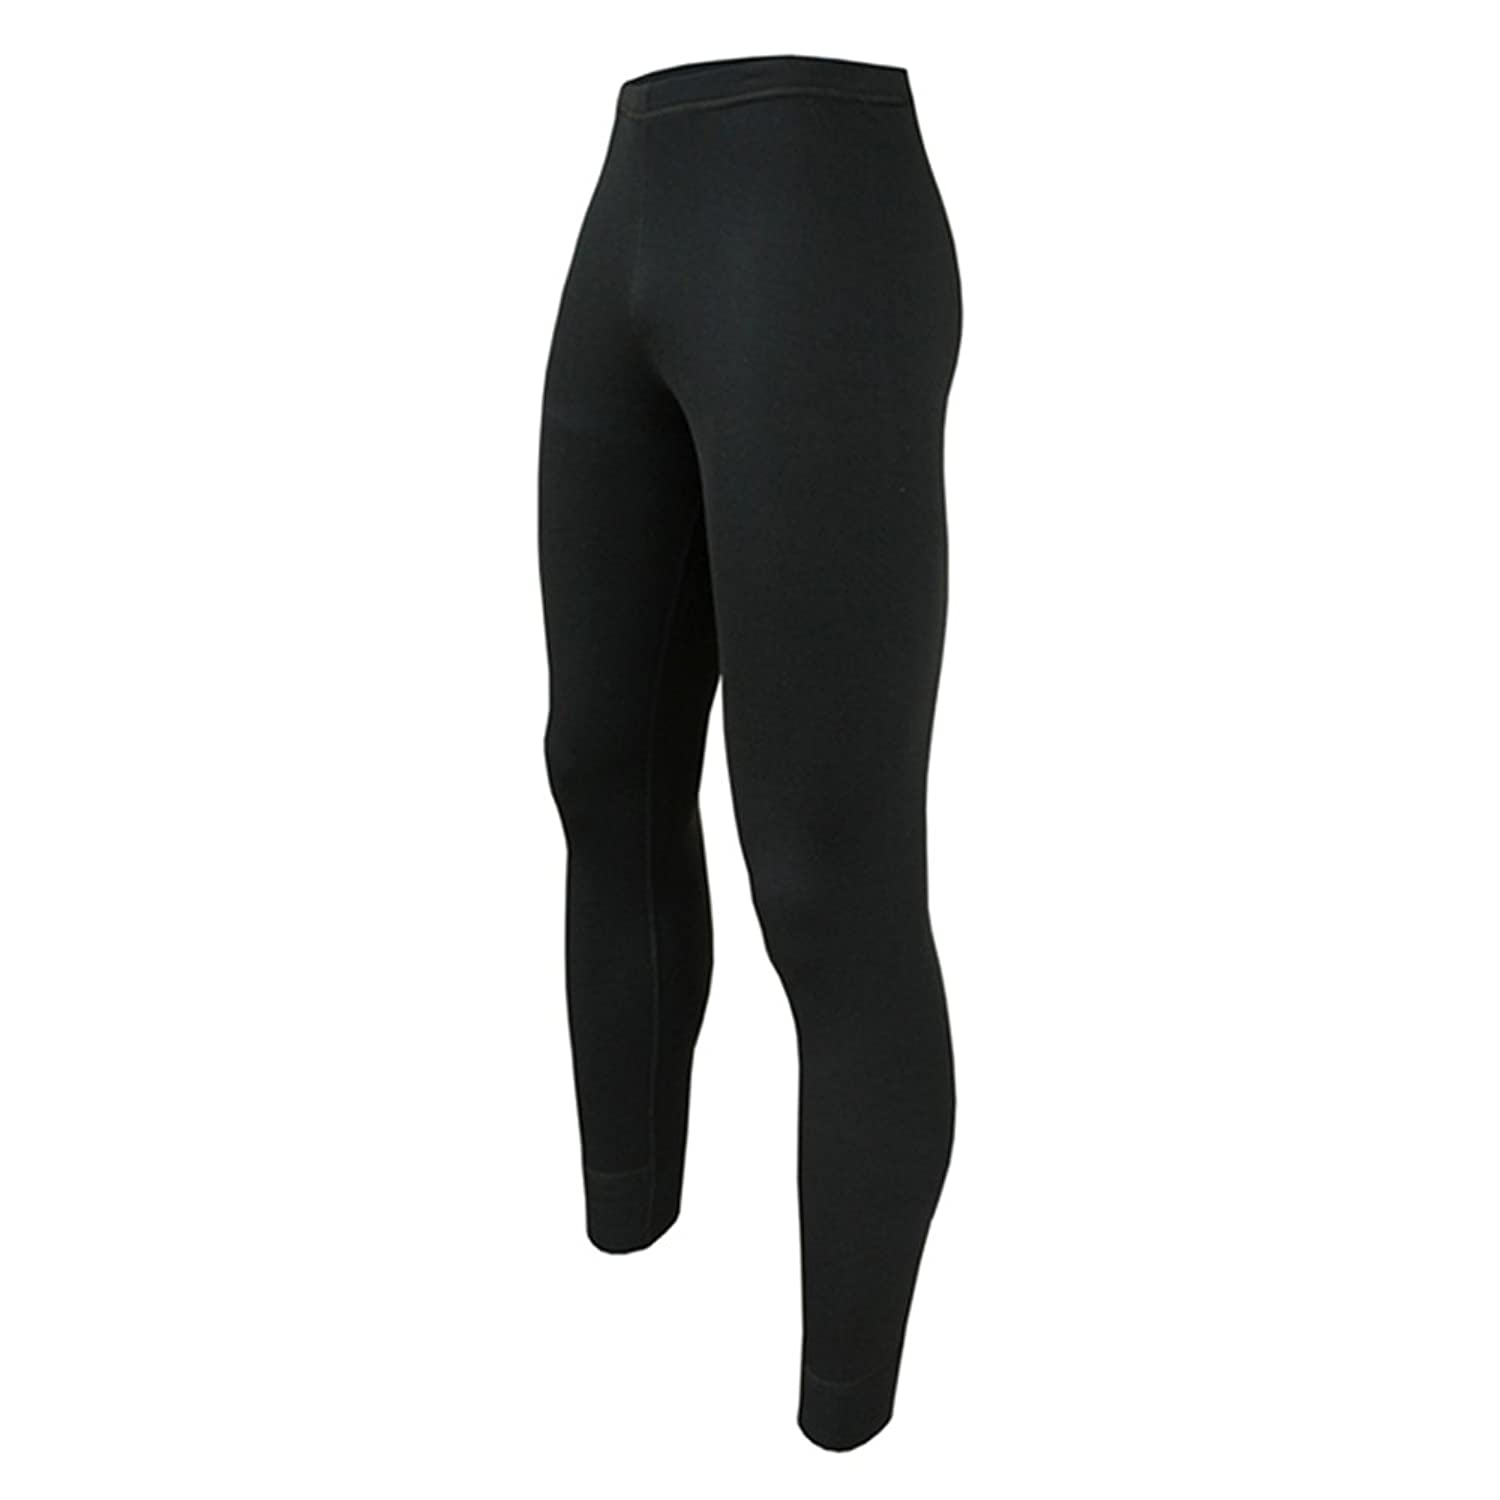 ROUGH RADICAL lange Unterhose Ski- Thermo- Funktionshose NANGA